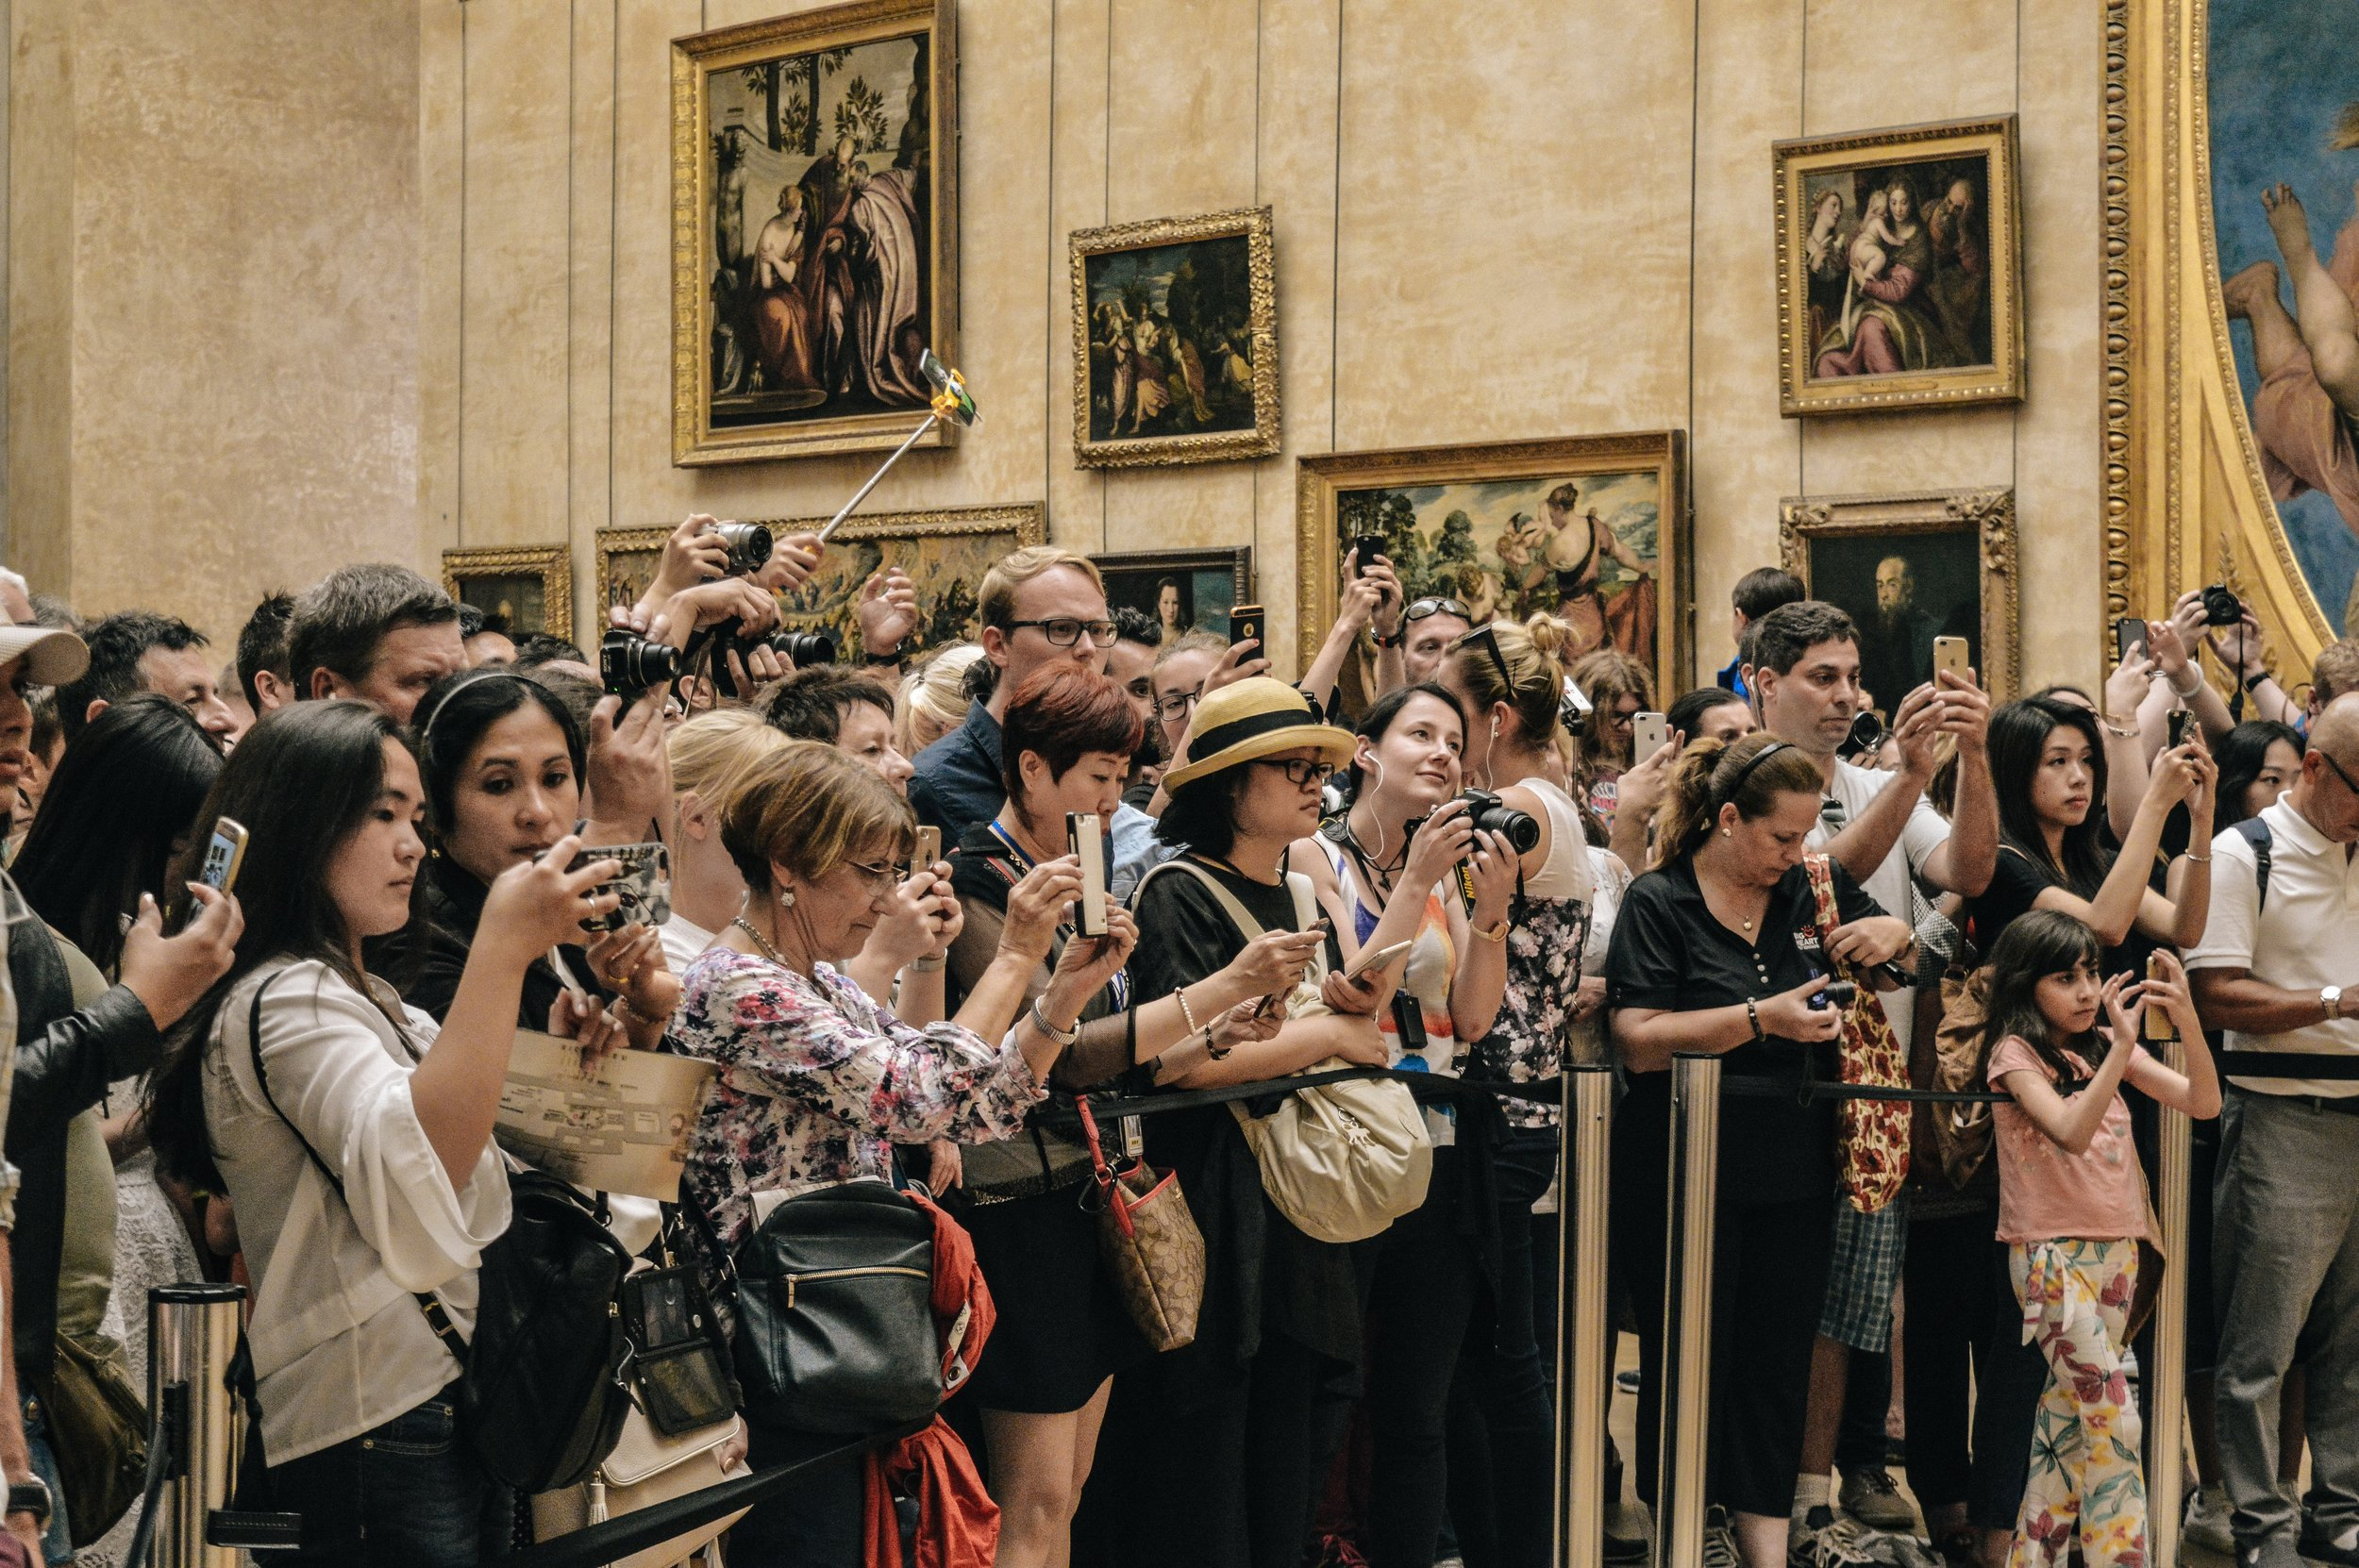 Snapping the Mona Lisa  Photo: Alicia Steels